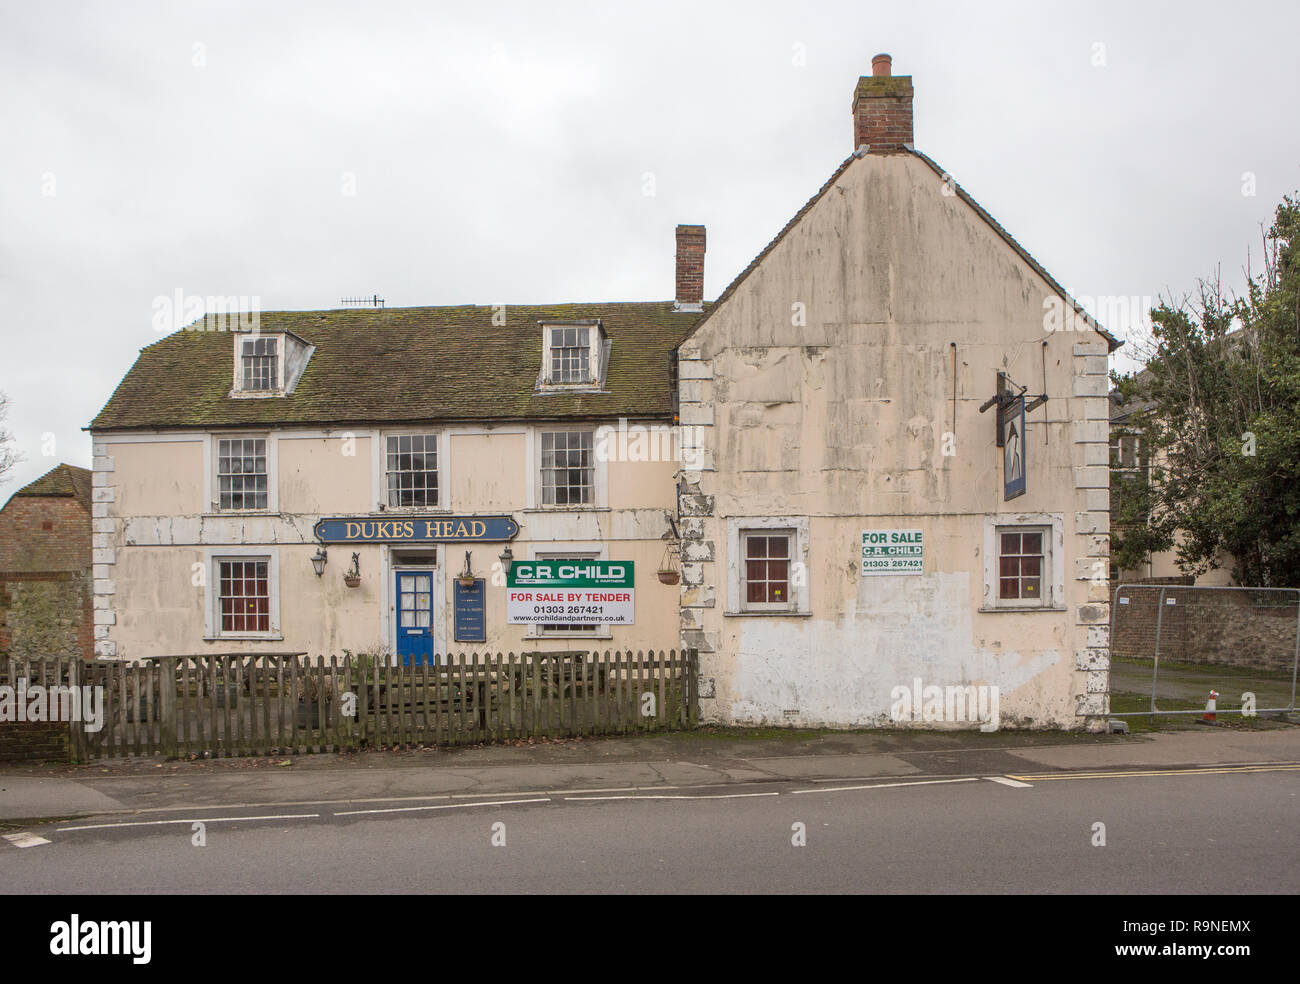 A closed public house - Stock Image